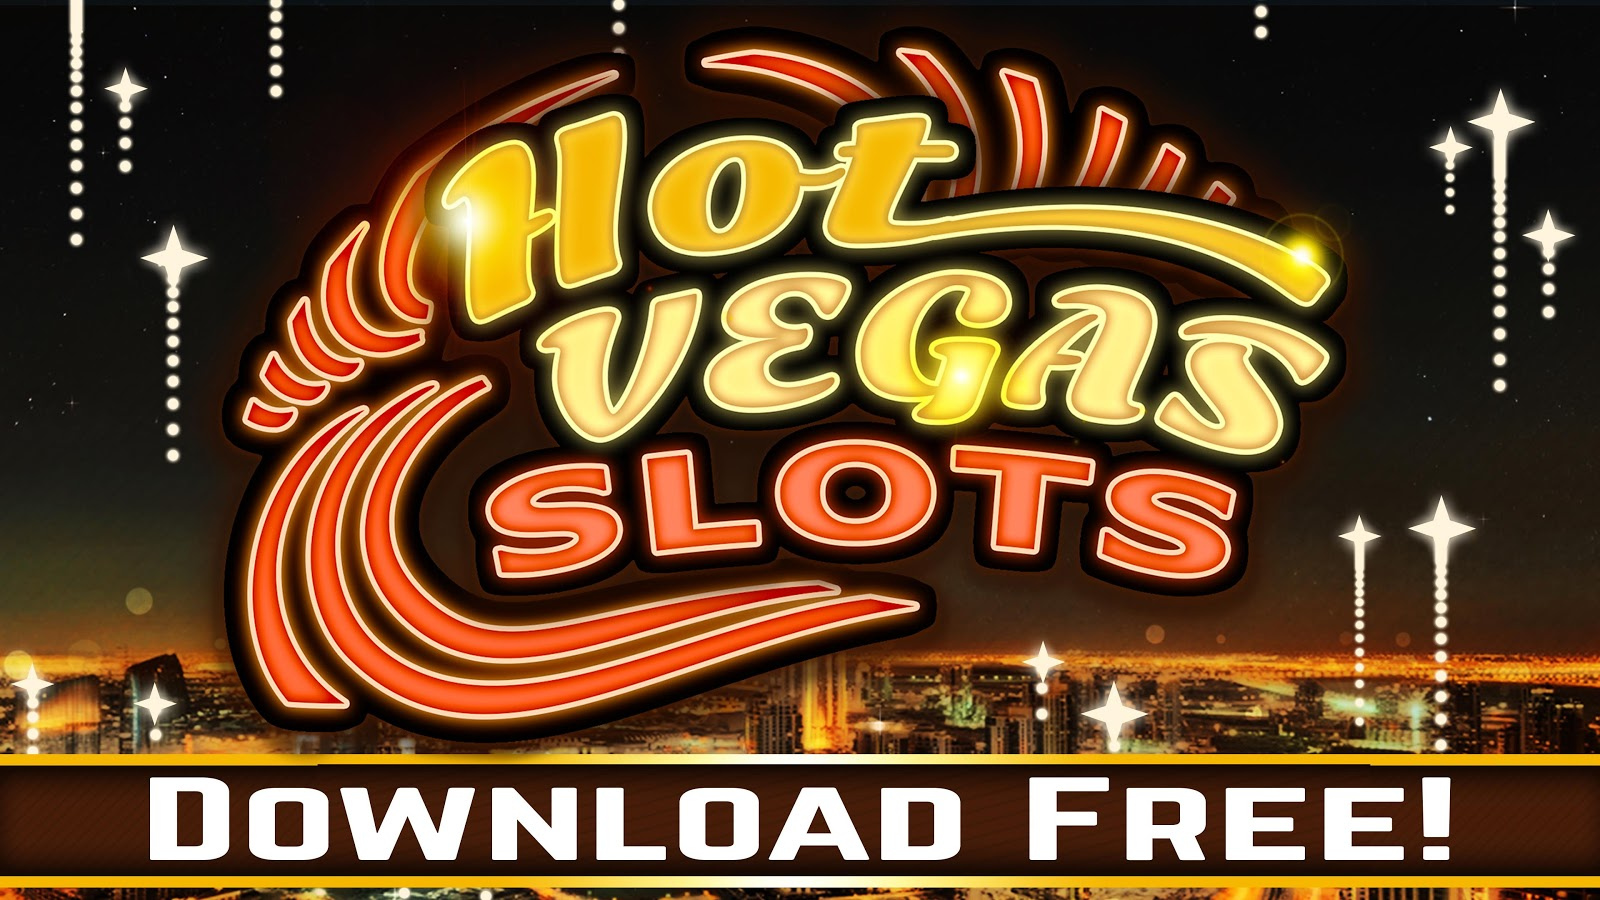 Doubles Slot Machine - Try it Online for Free or Real Money